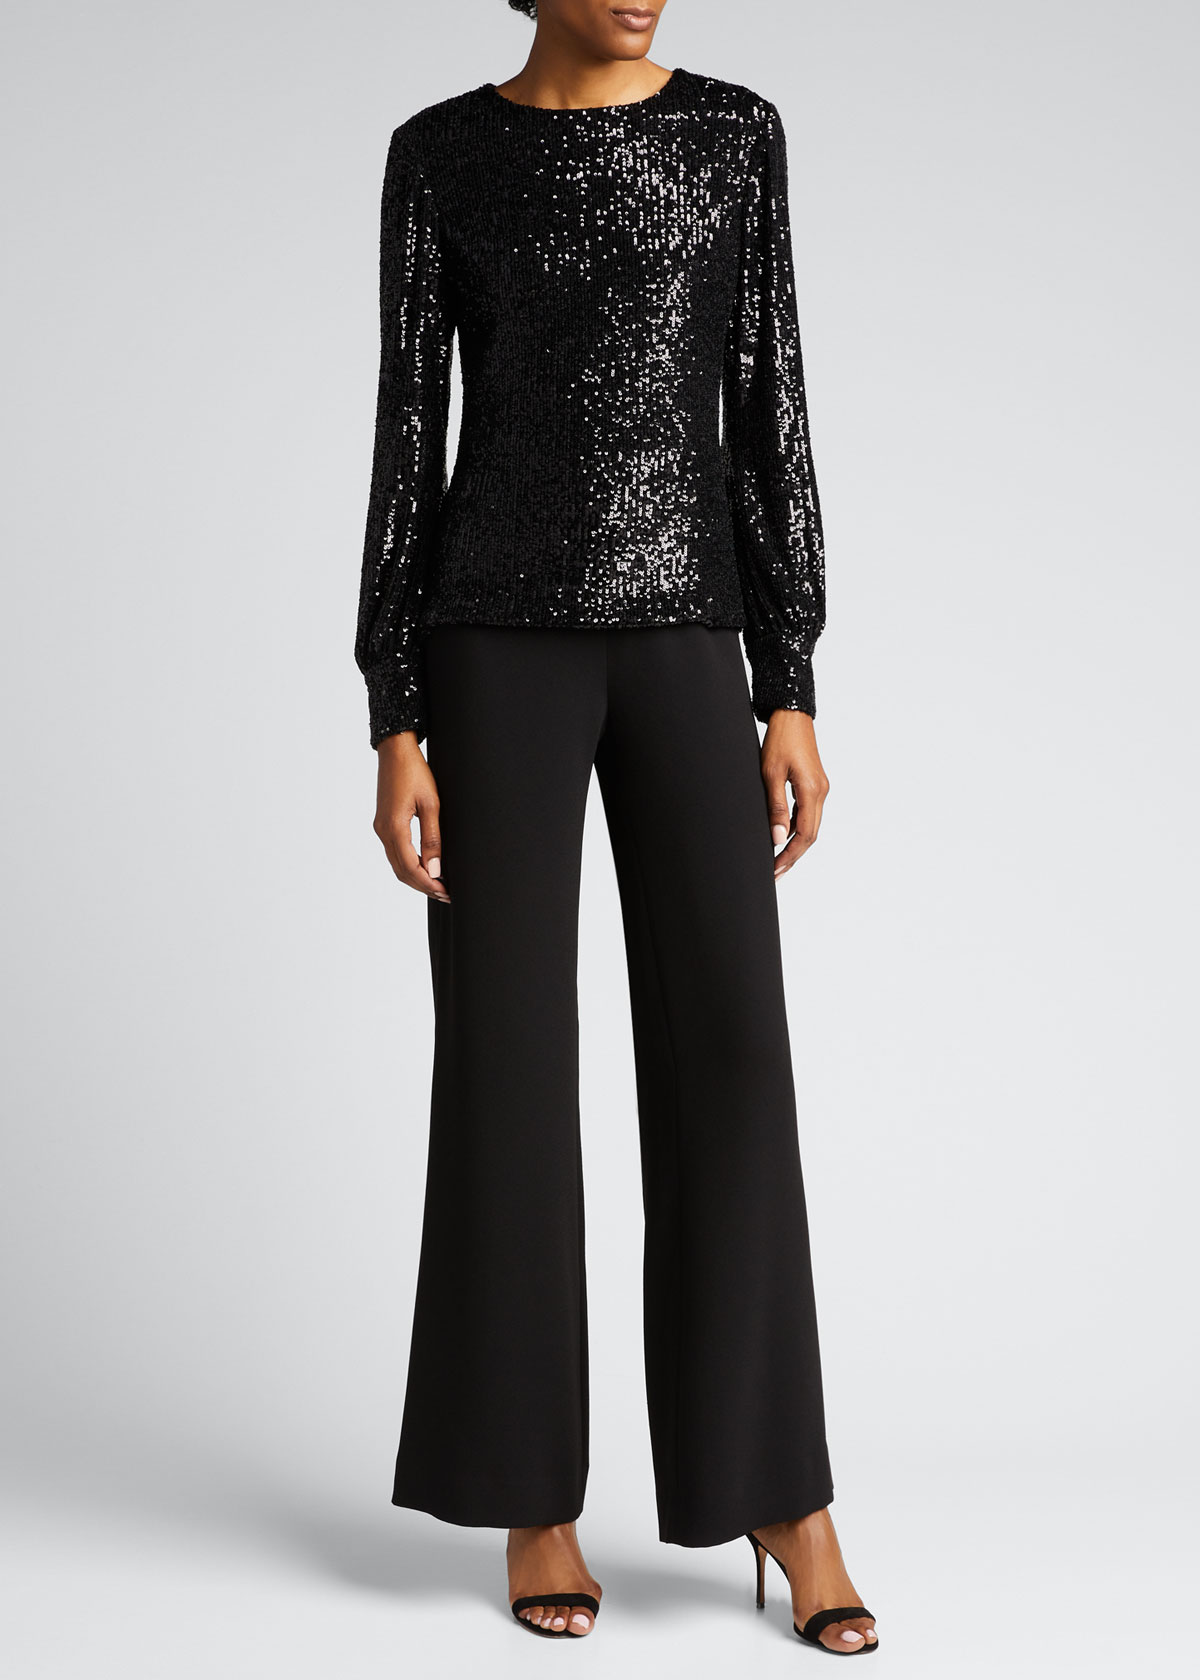 Rickie Freeman For Teri Jon Tops SEQUIN PUFF-SLEEVE TOP